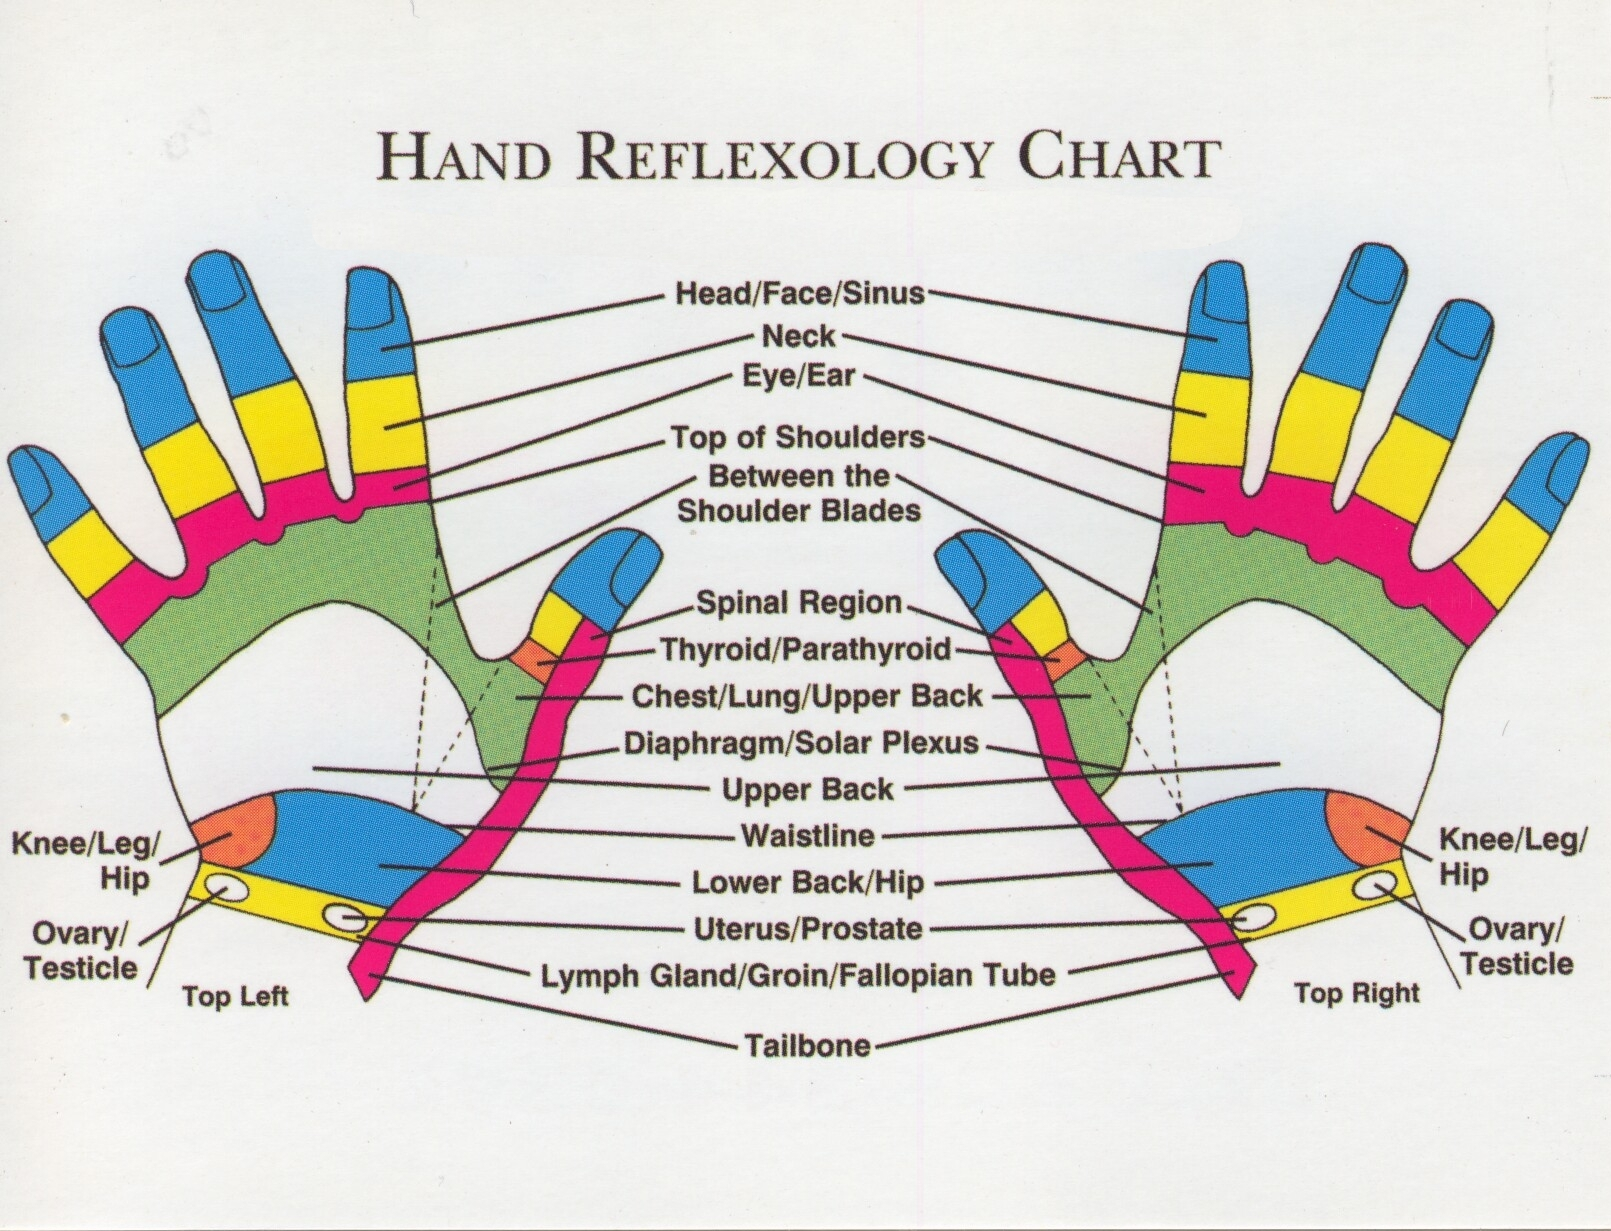 Does Pressure Point Therapy, Reflexology Really Work. Purple Heart Of Houston Locksmiths In Phoenix. Divorce Lawyers Orlando Florida. Tankless Water Heater Vs Conventional. Military Intelligence University. Occupational Therapy Schools In Oklahoma. Personal Financial Management Course. Web Marketing Specialist Articles On Security. Blue Cross Blue Shield Supplemental Plans